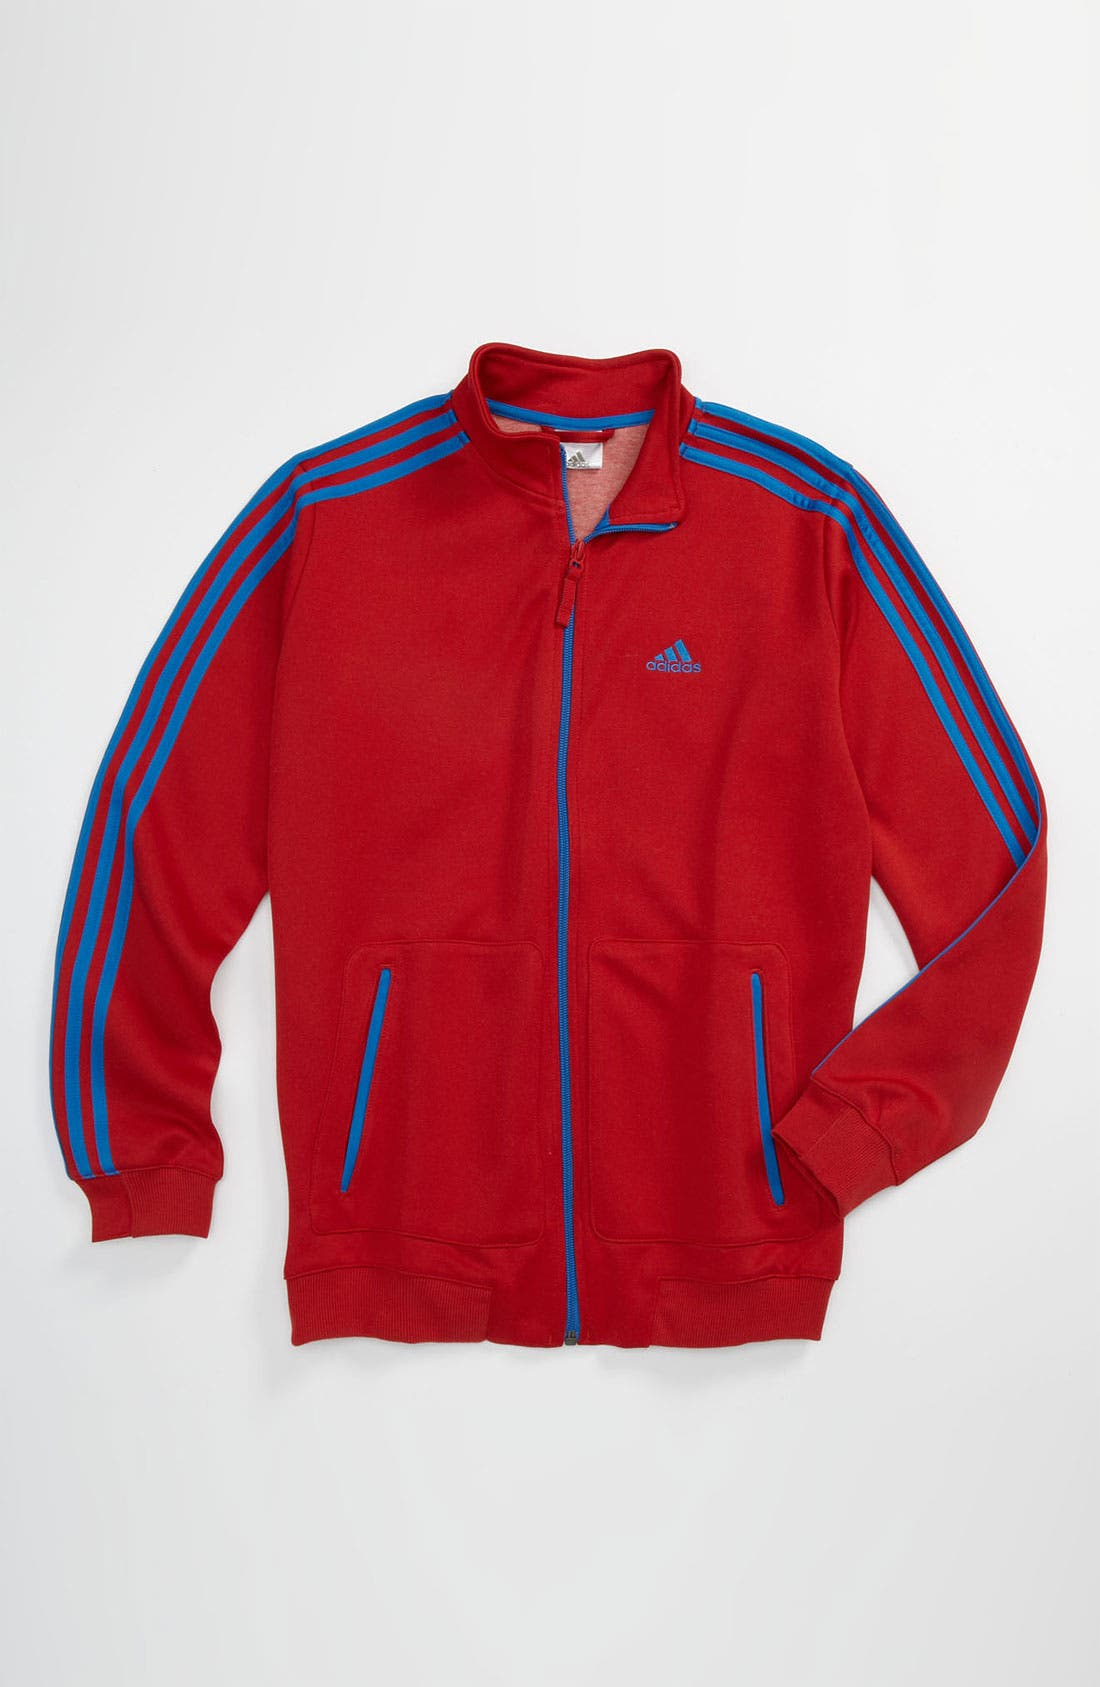 Alternate Image 1 Selected - adidas 'Ultimate' Track Jacket (Big Boys)